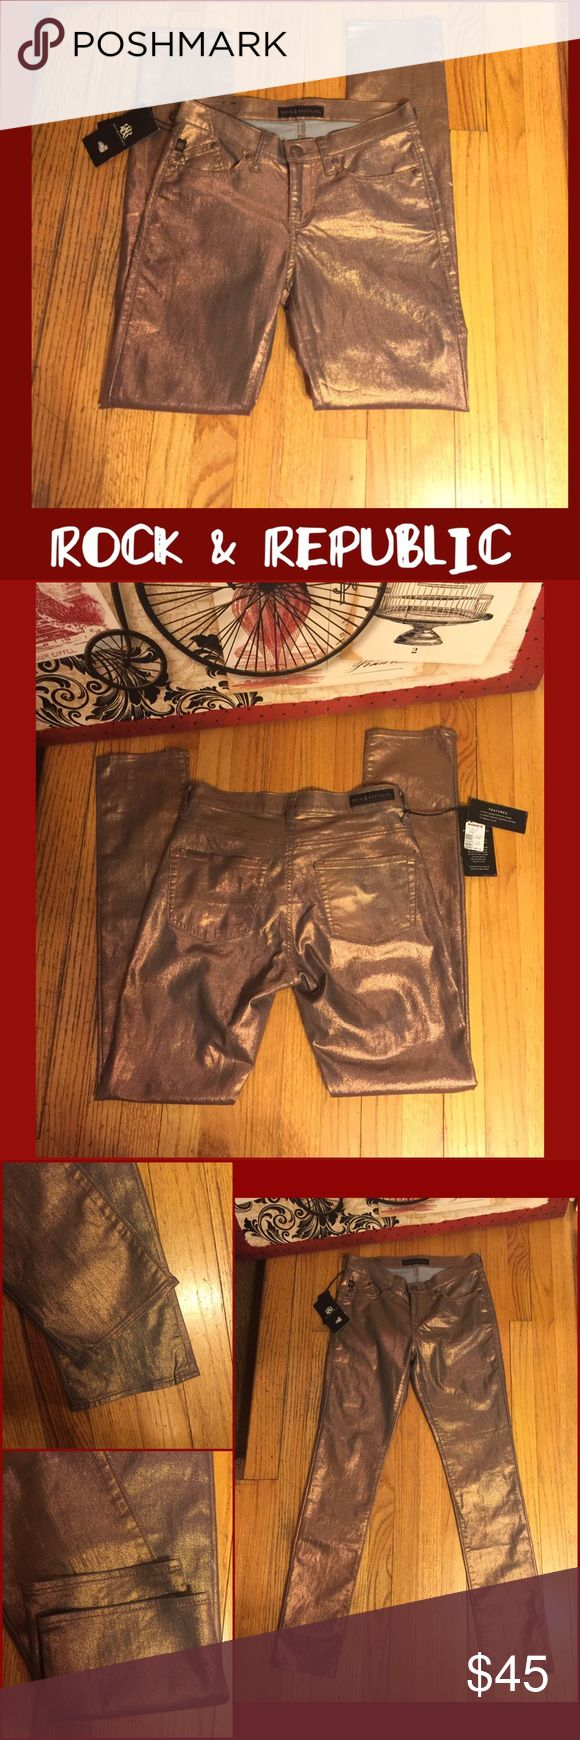 """NWT-SZ 6-ROCK & REPUBLIC COPPER SKINNY JEANS-30""""in NWT-RETAIL $88. ROCK & REPUBLIC """" BERLIN SKINNY"""" COPPER METALLIC WAXED DENIM JEANS. 30"""" INSEAM; LOW 8.5"""" RISE. STRETCH! 72% COTTON/ 27% POLYESTER/ 2% SPANDEX. SZ 6/28. ACTUAL MEASUREMENTS LYING FLAT: WAIST 15""""; HIPS 17"""". 6"""" FOOT OPENING LYING FLAT. PLEASE DO NOT HESITATE TO ASK ANY QUESTIONS! #nwt #rock&republic #berlinskinny #coppermetallic #waxeddenim #jeans Rock & Republic Jeans Skinny"""